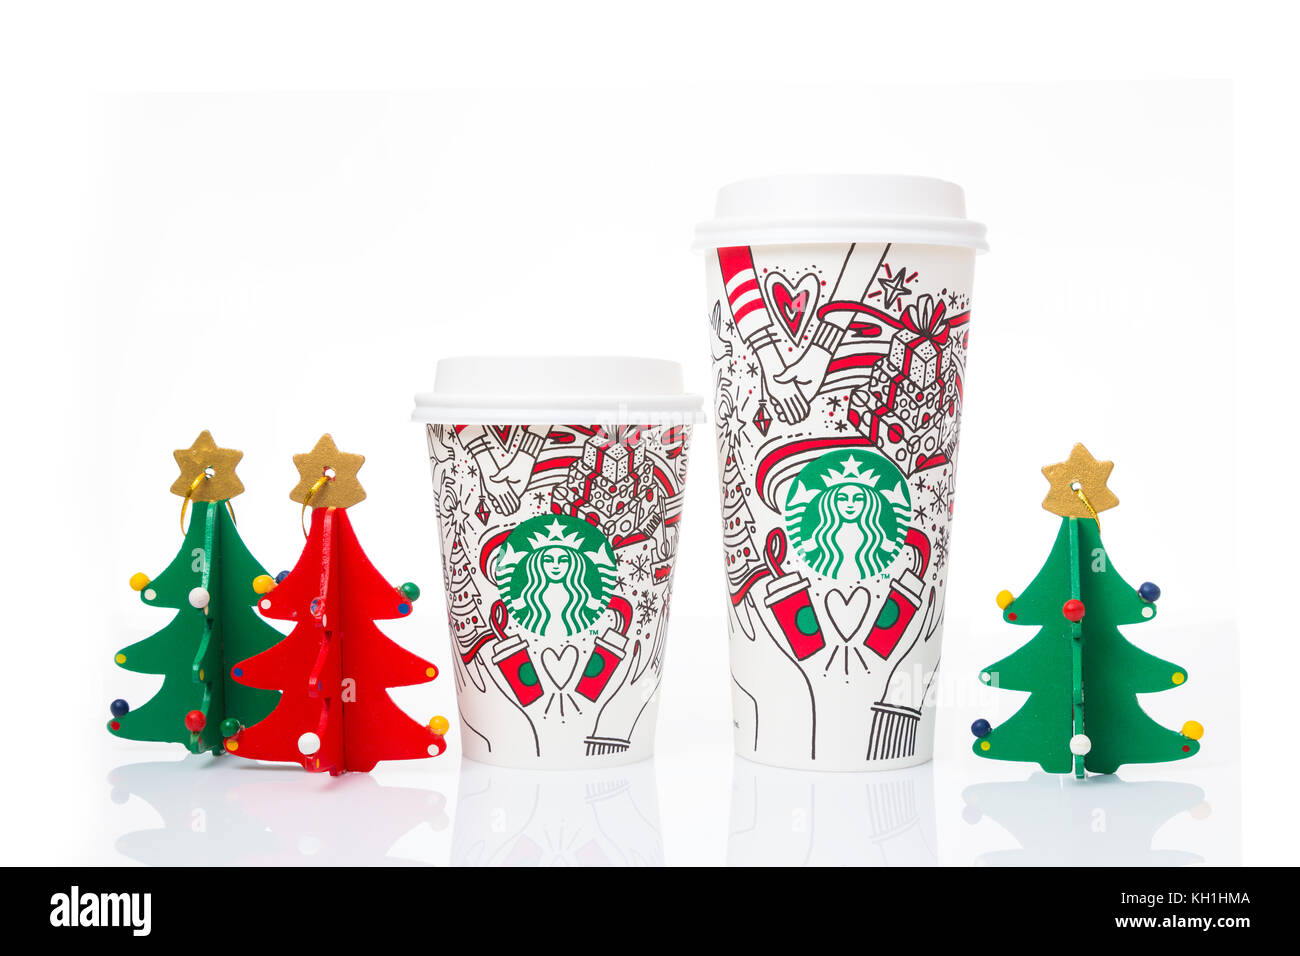 Starbucks Holidays Stock Photos & Starbucks Holidays Stock Images ...